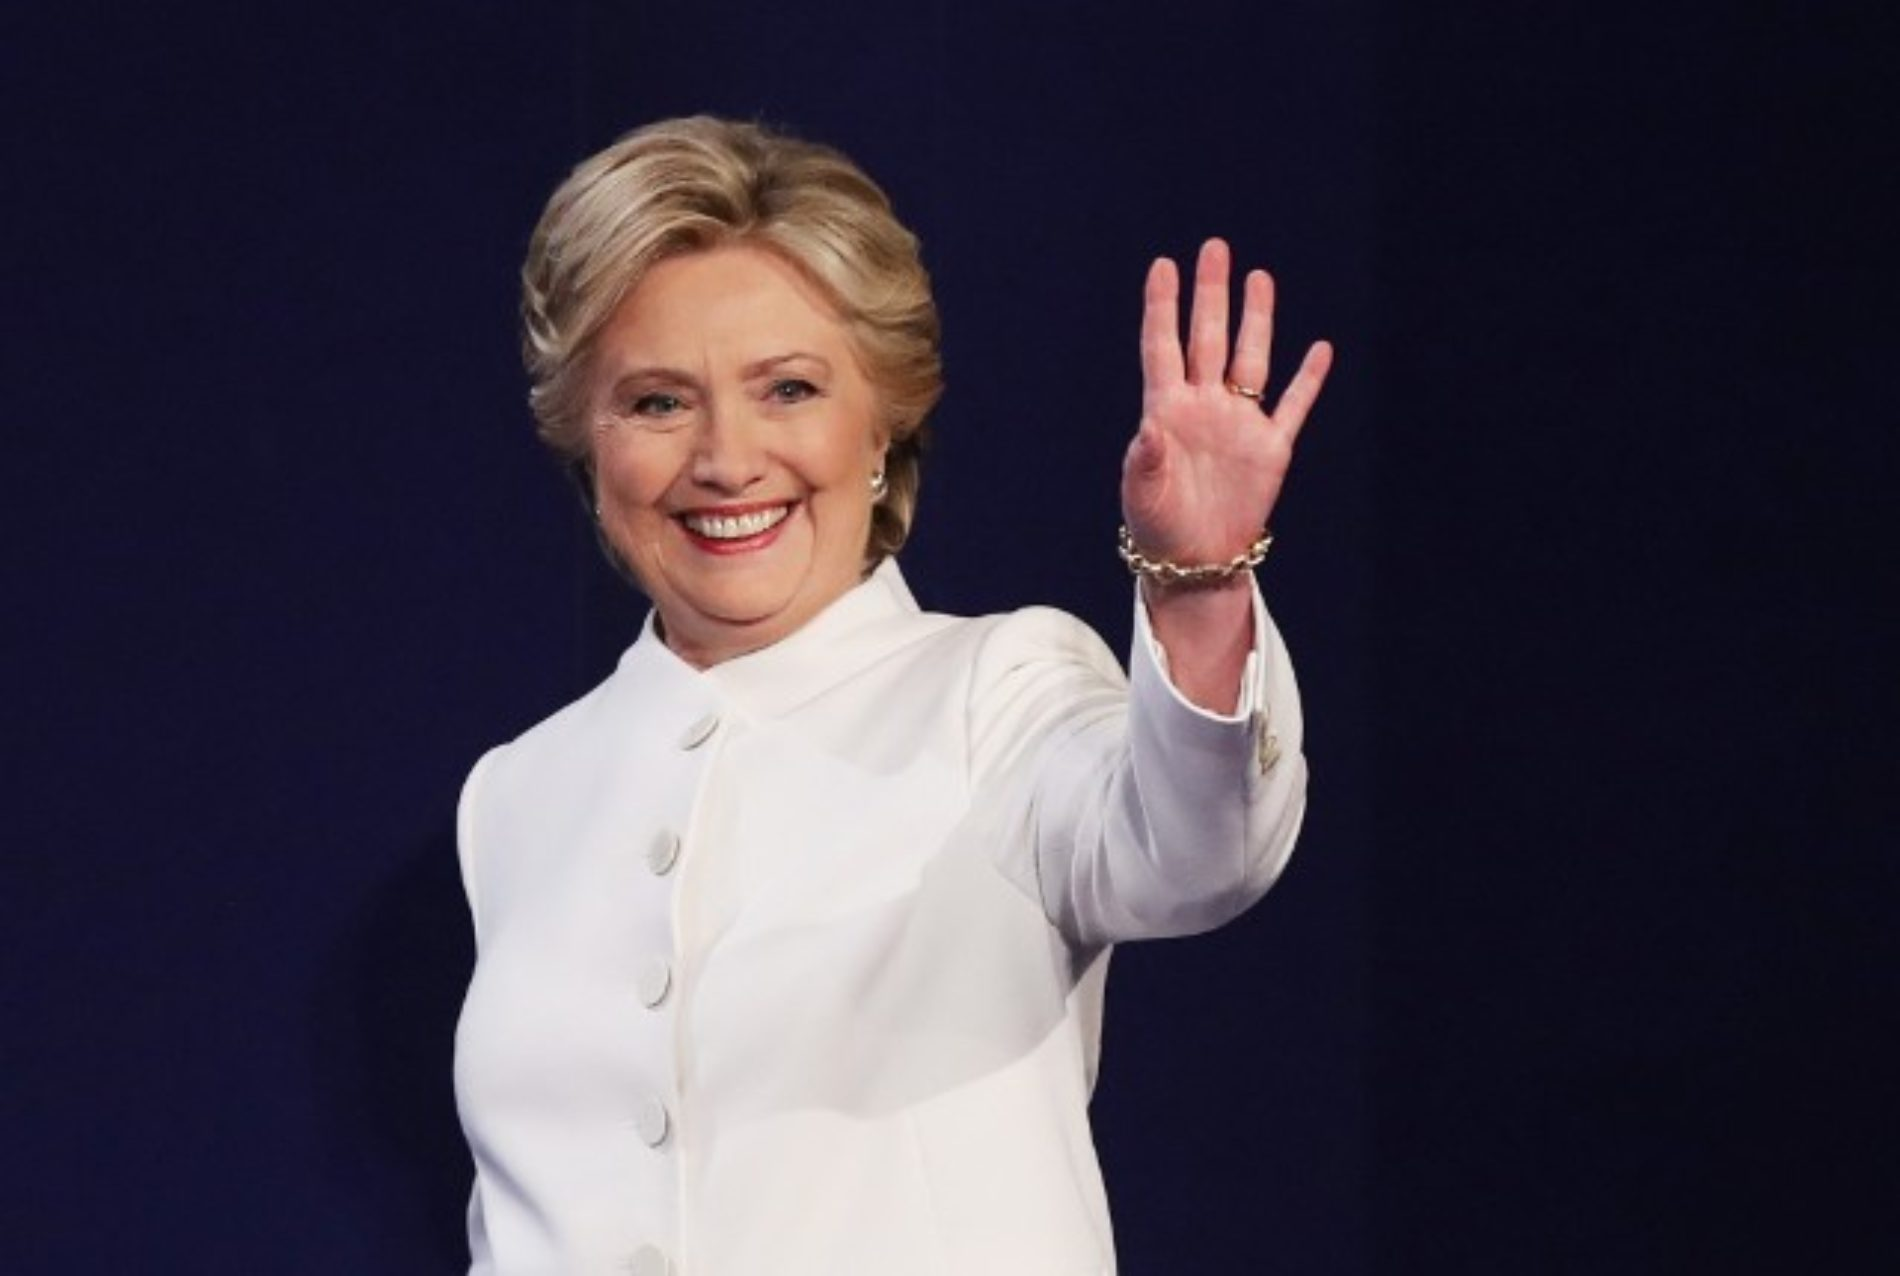 Why Hillary Clinton Should Be President Of The United States